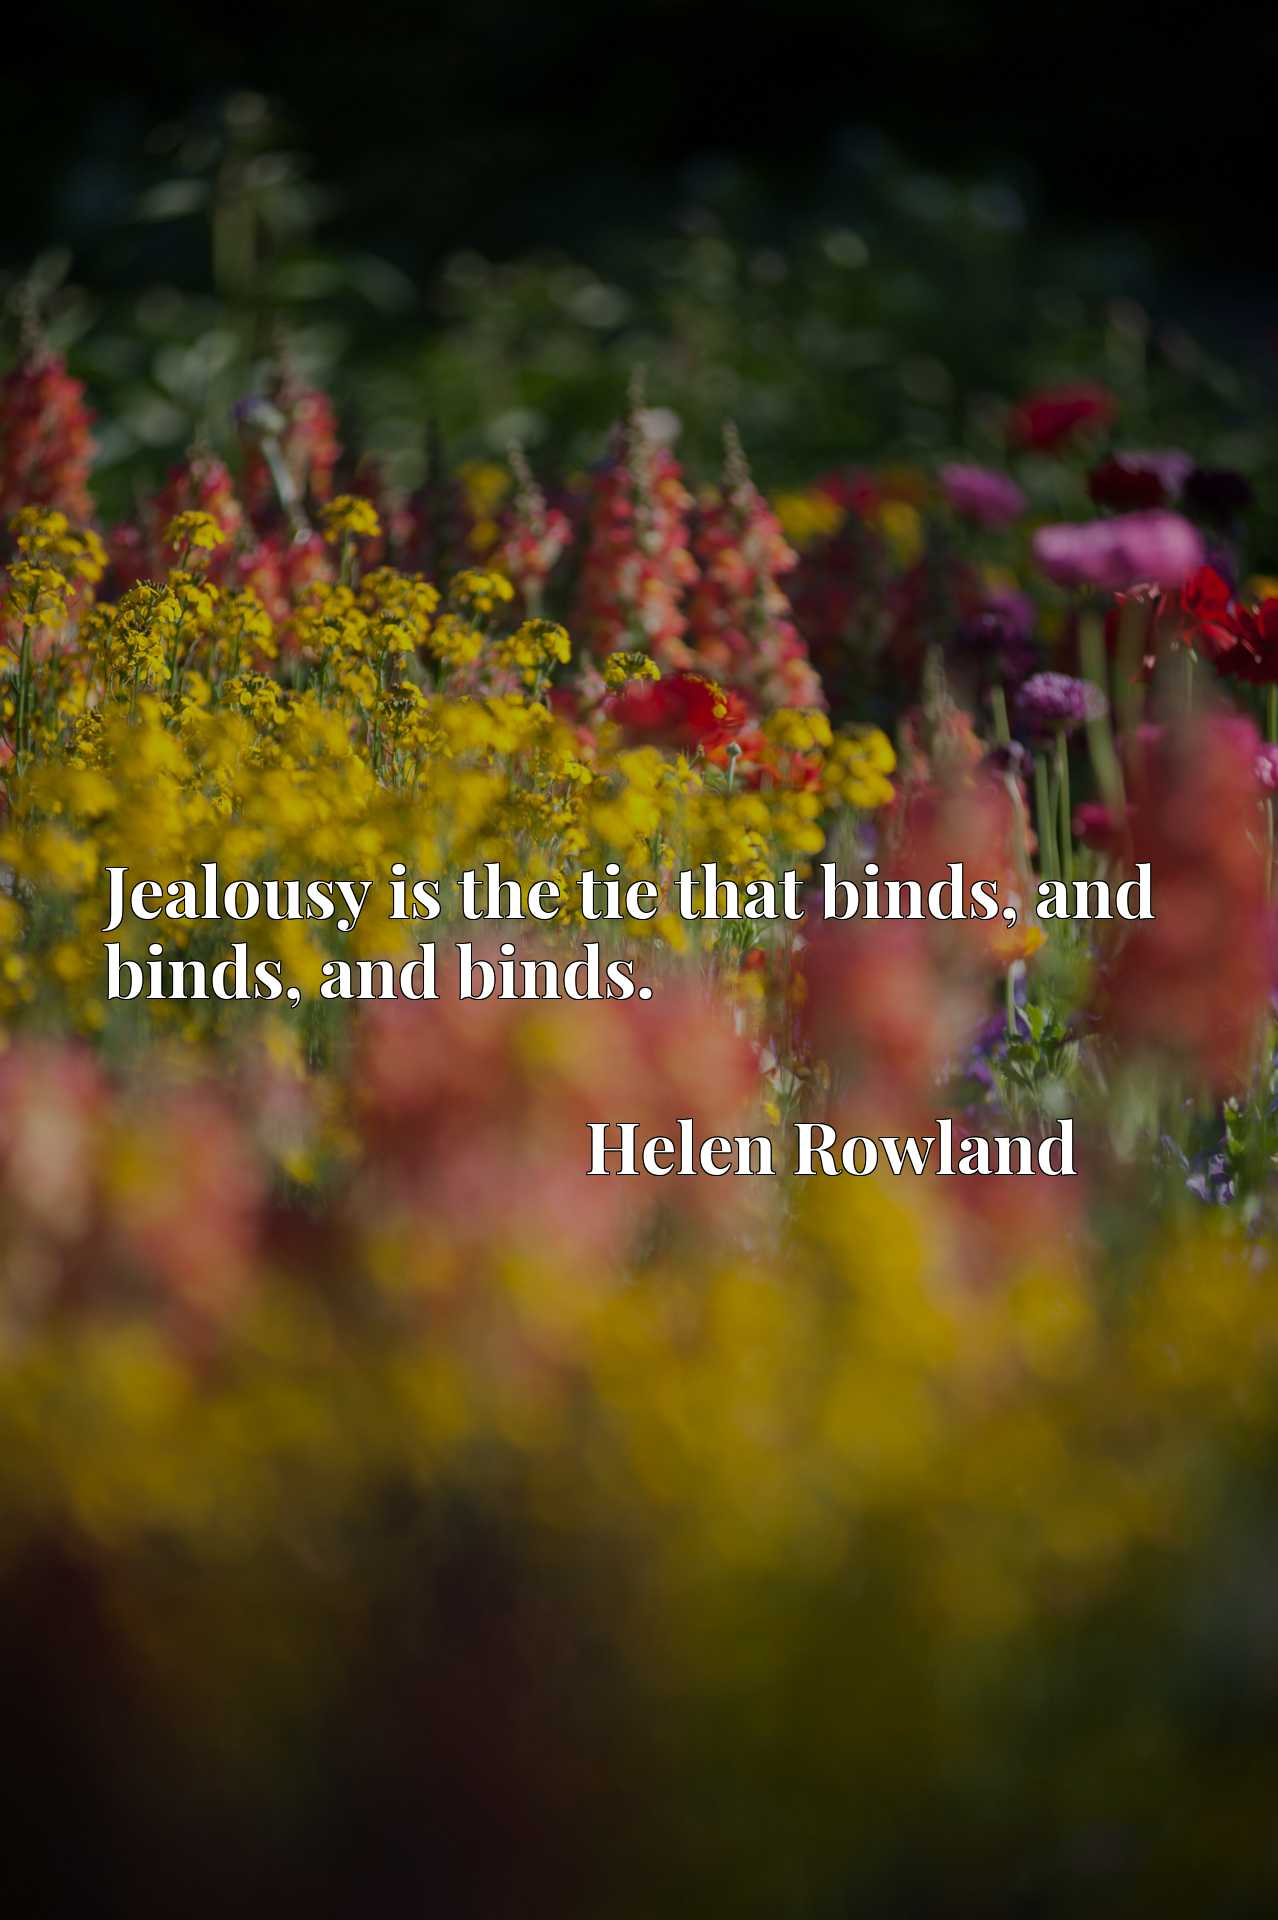 Jealousy is the tie that binds, and binds, and binds.